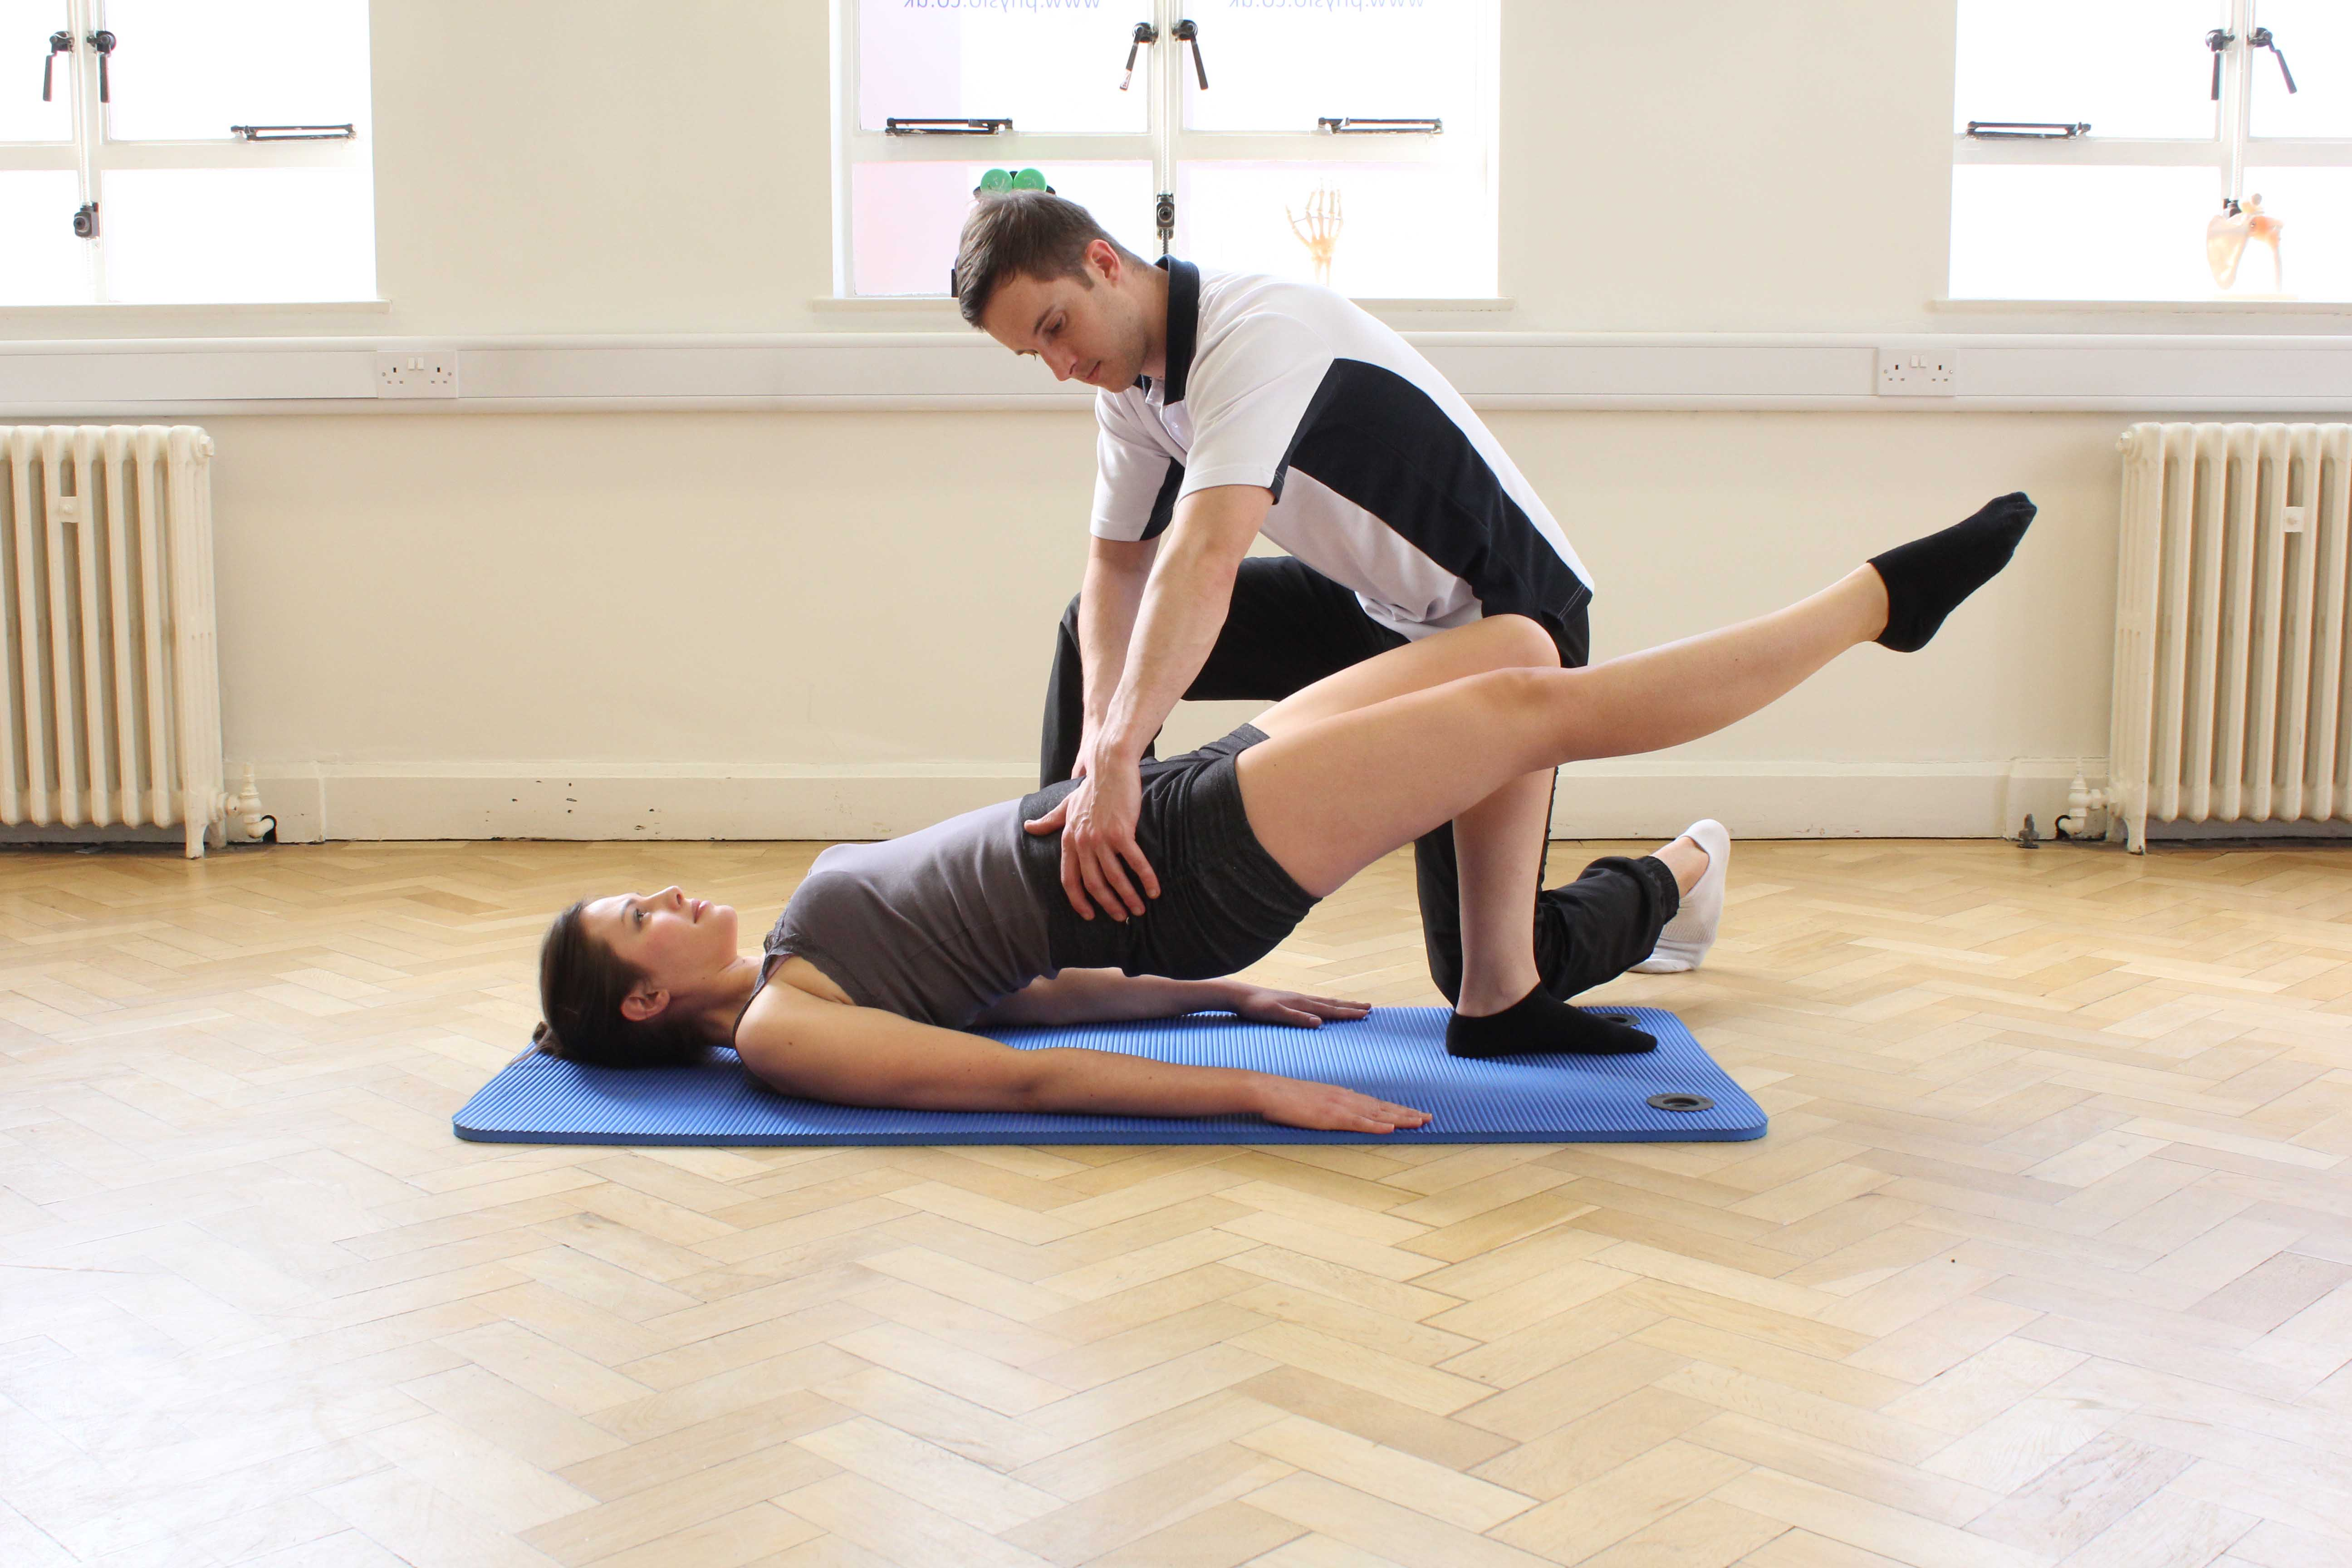 Hip and core stability exercises supervised by an experienced physiotherapist